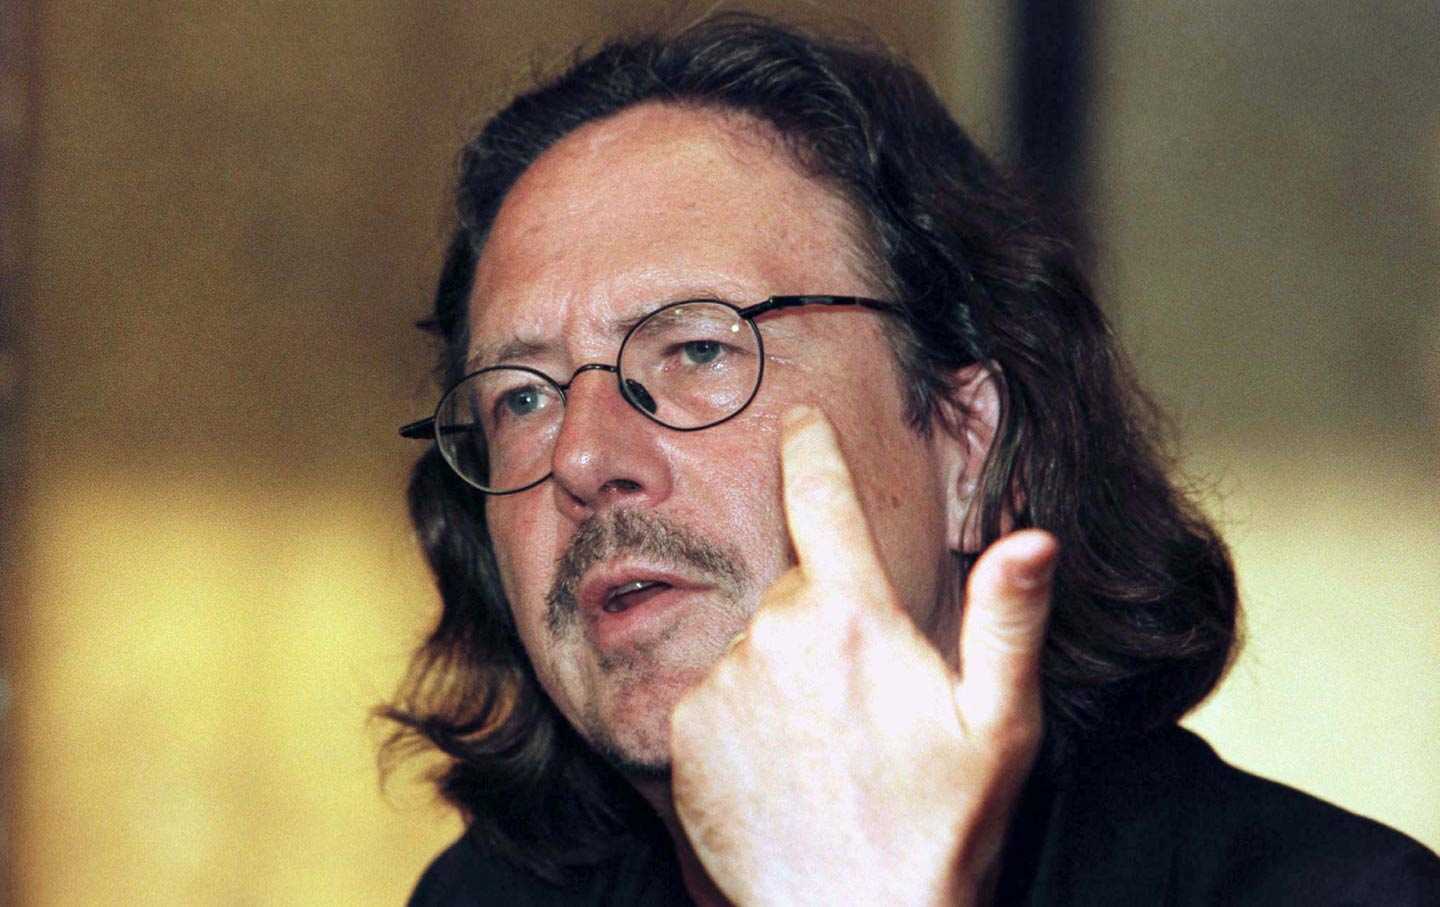 Peter-Handke-R-book-reading-reuters-img